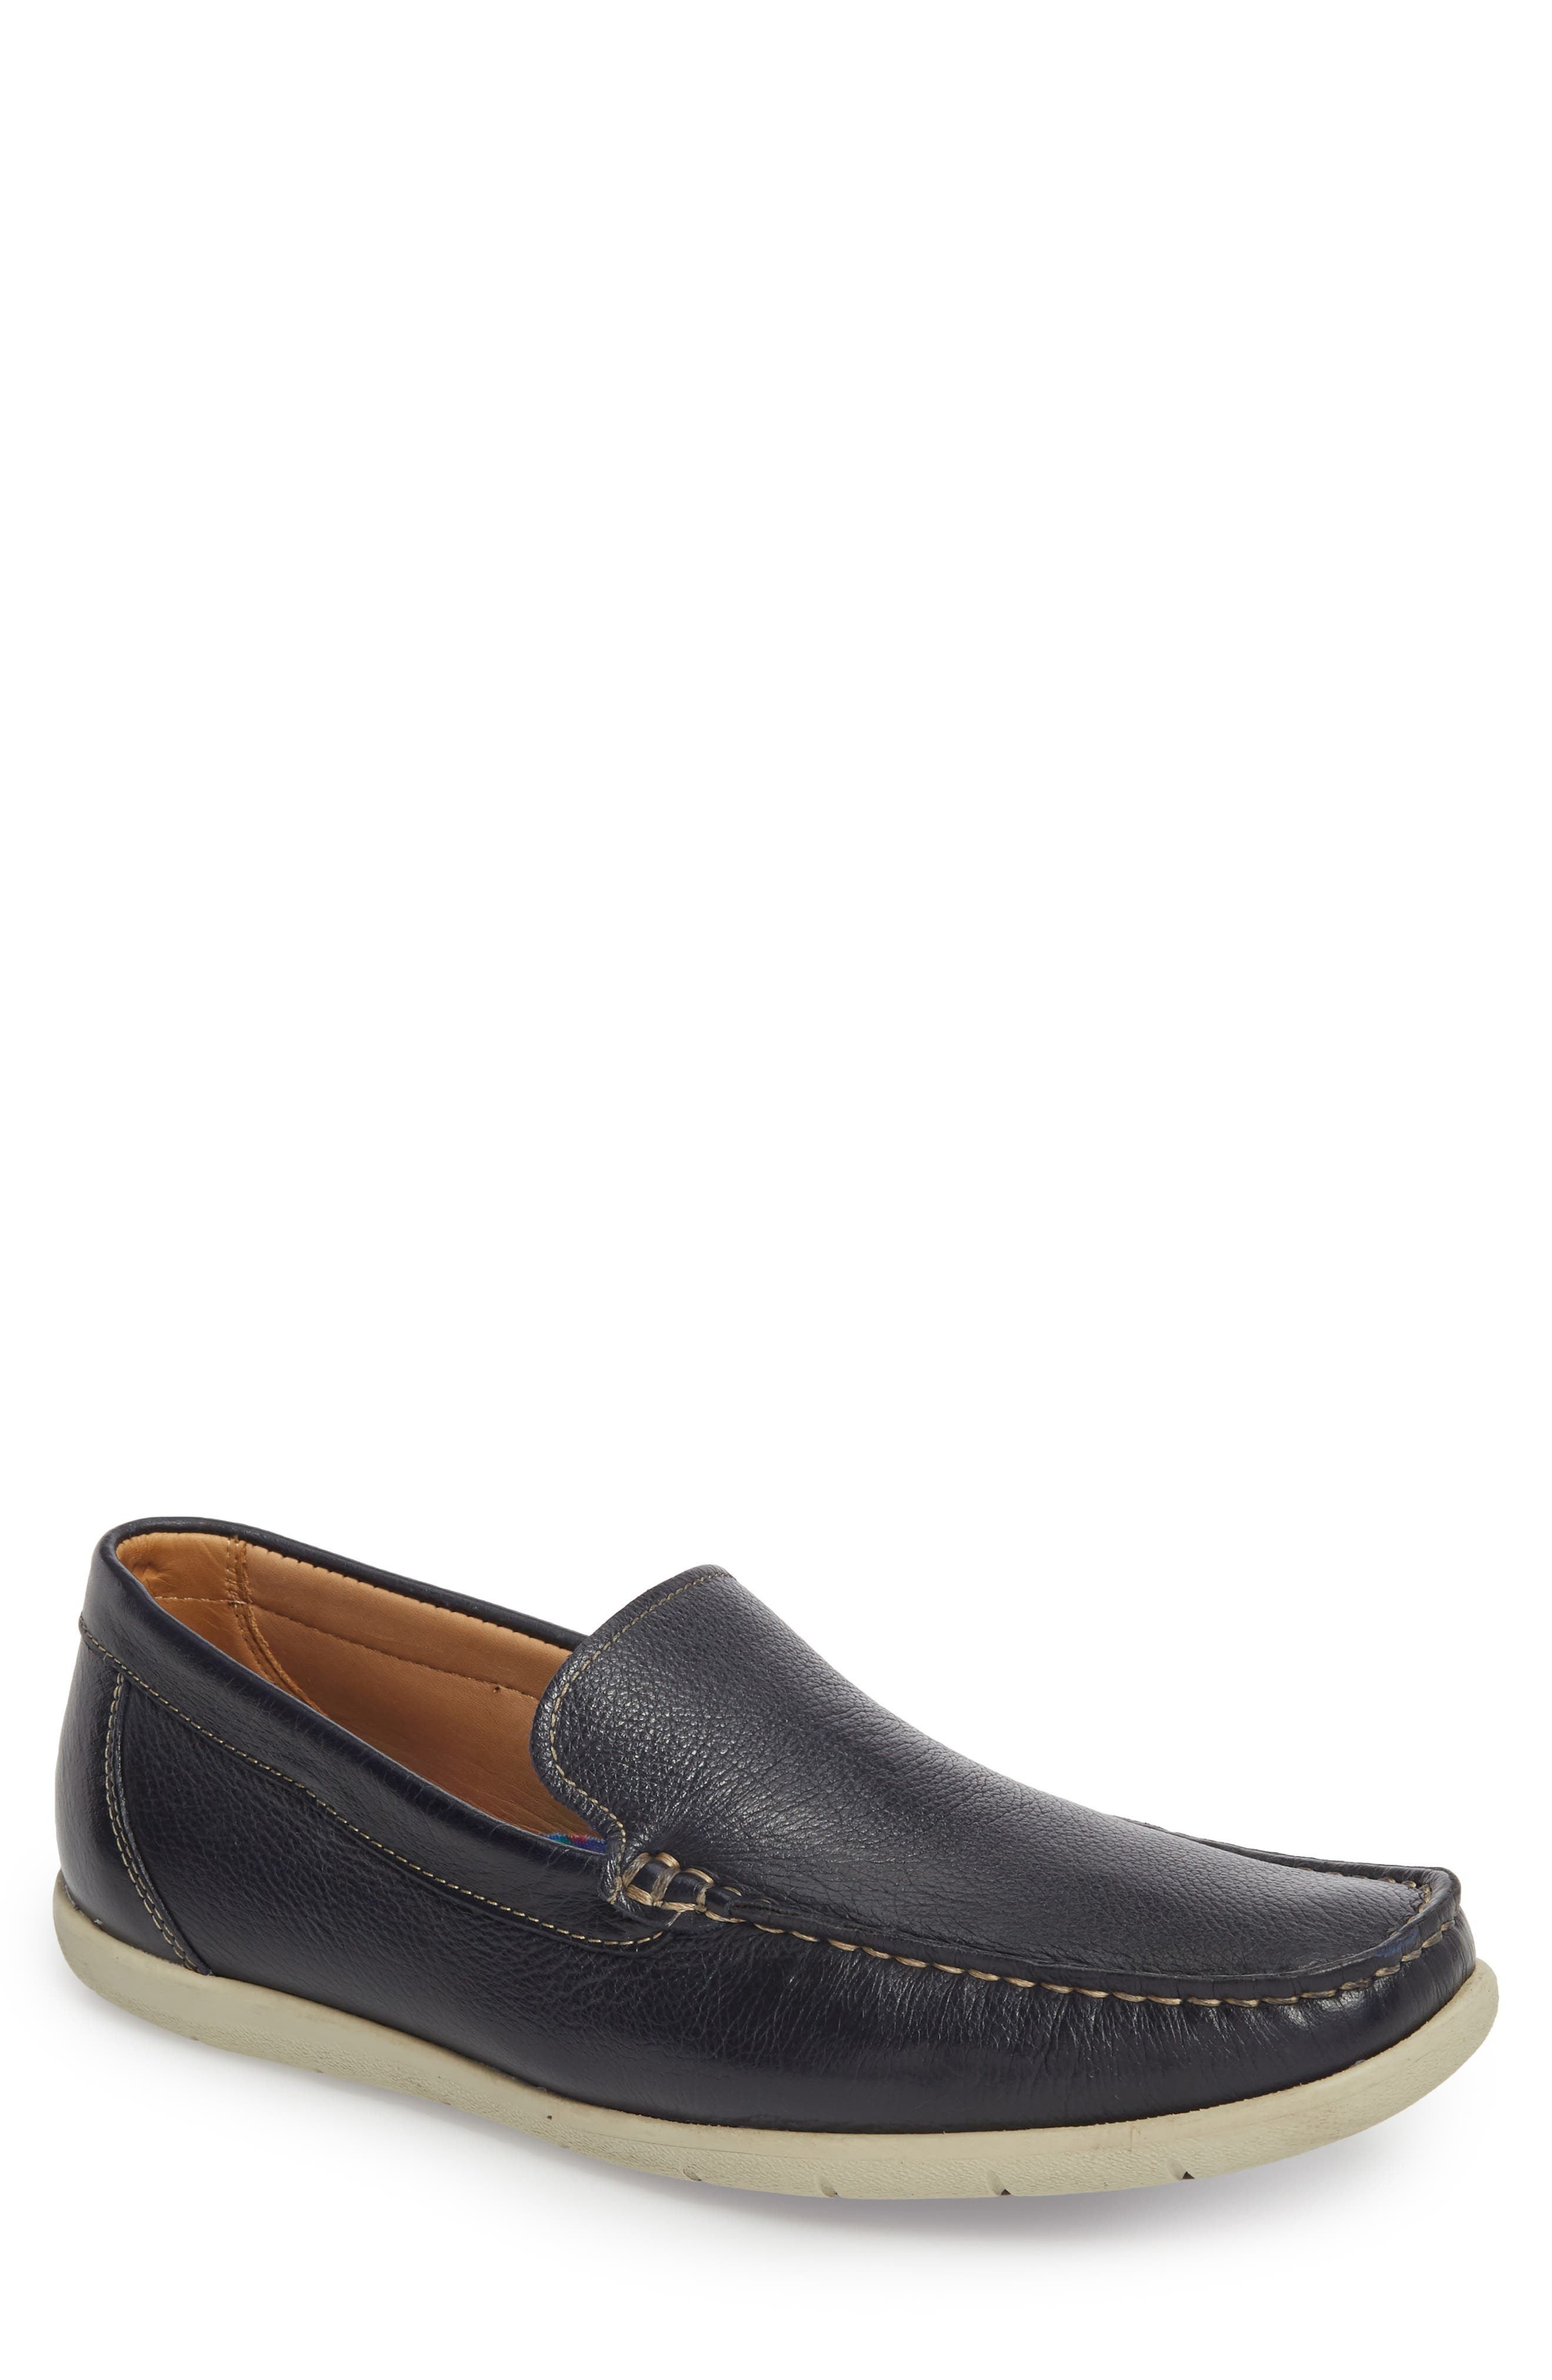 Calistoga Loafer,                             Main thumbnail 1, color,                             Navy Leather